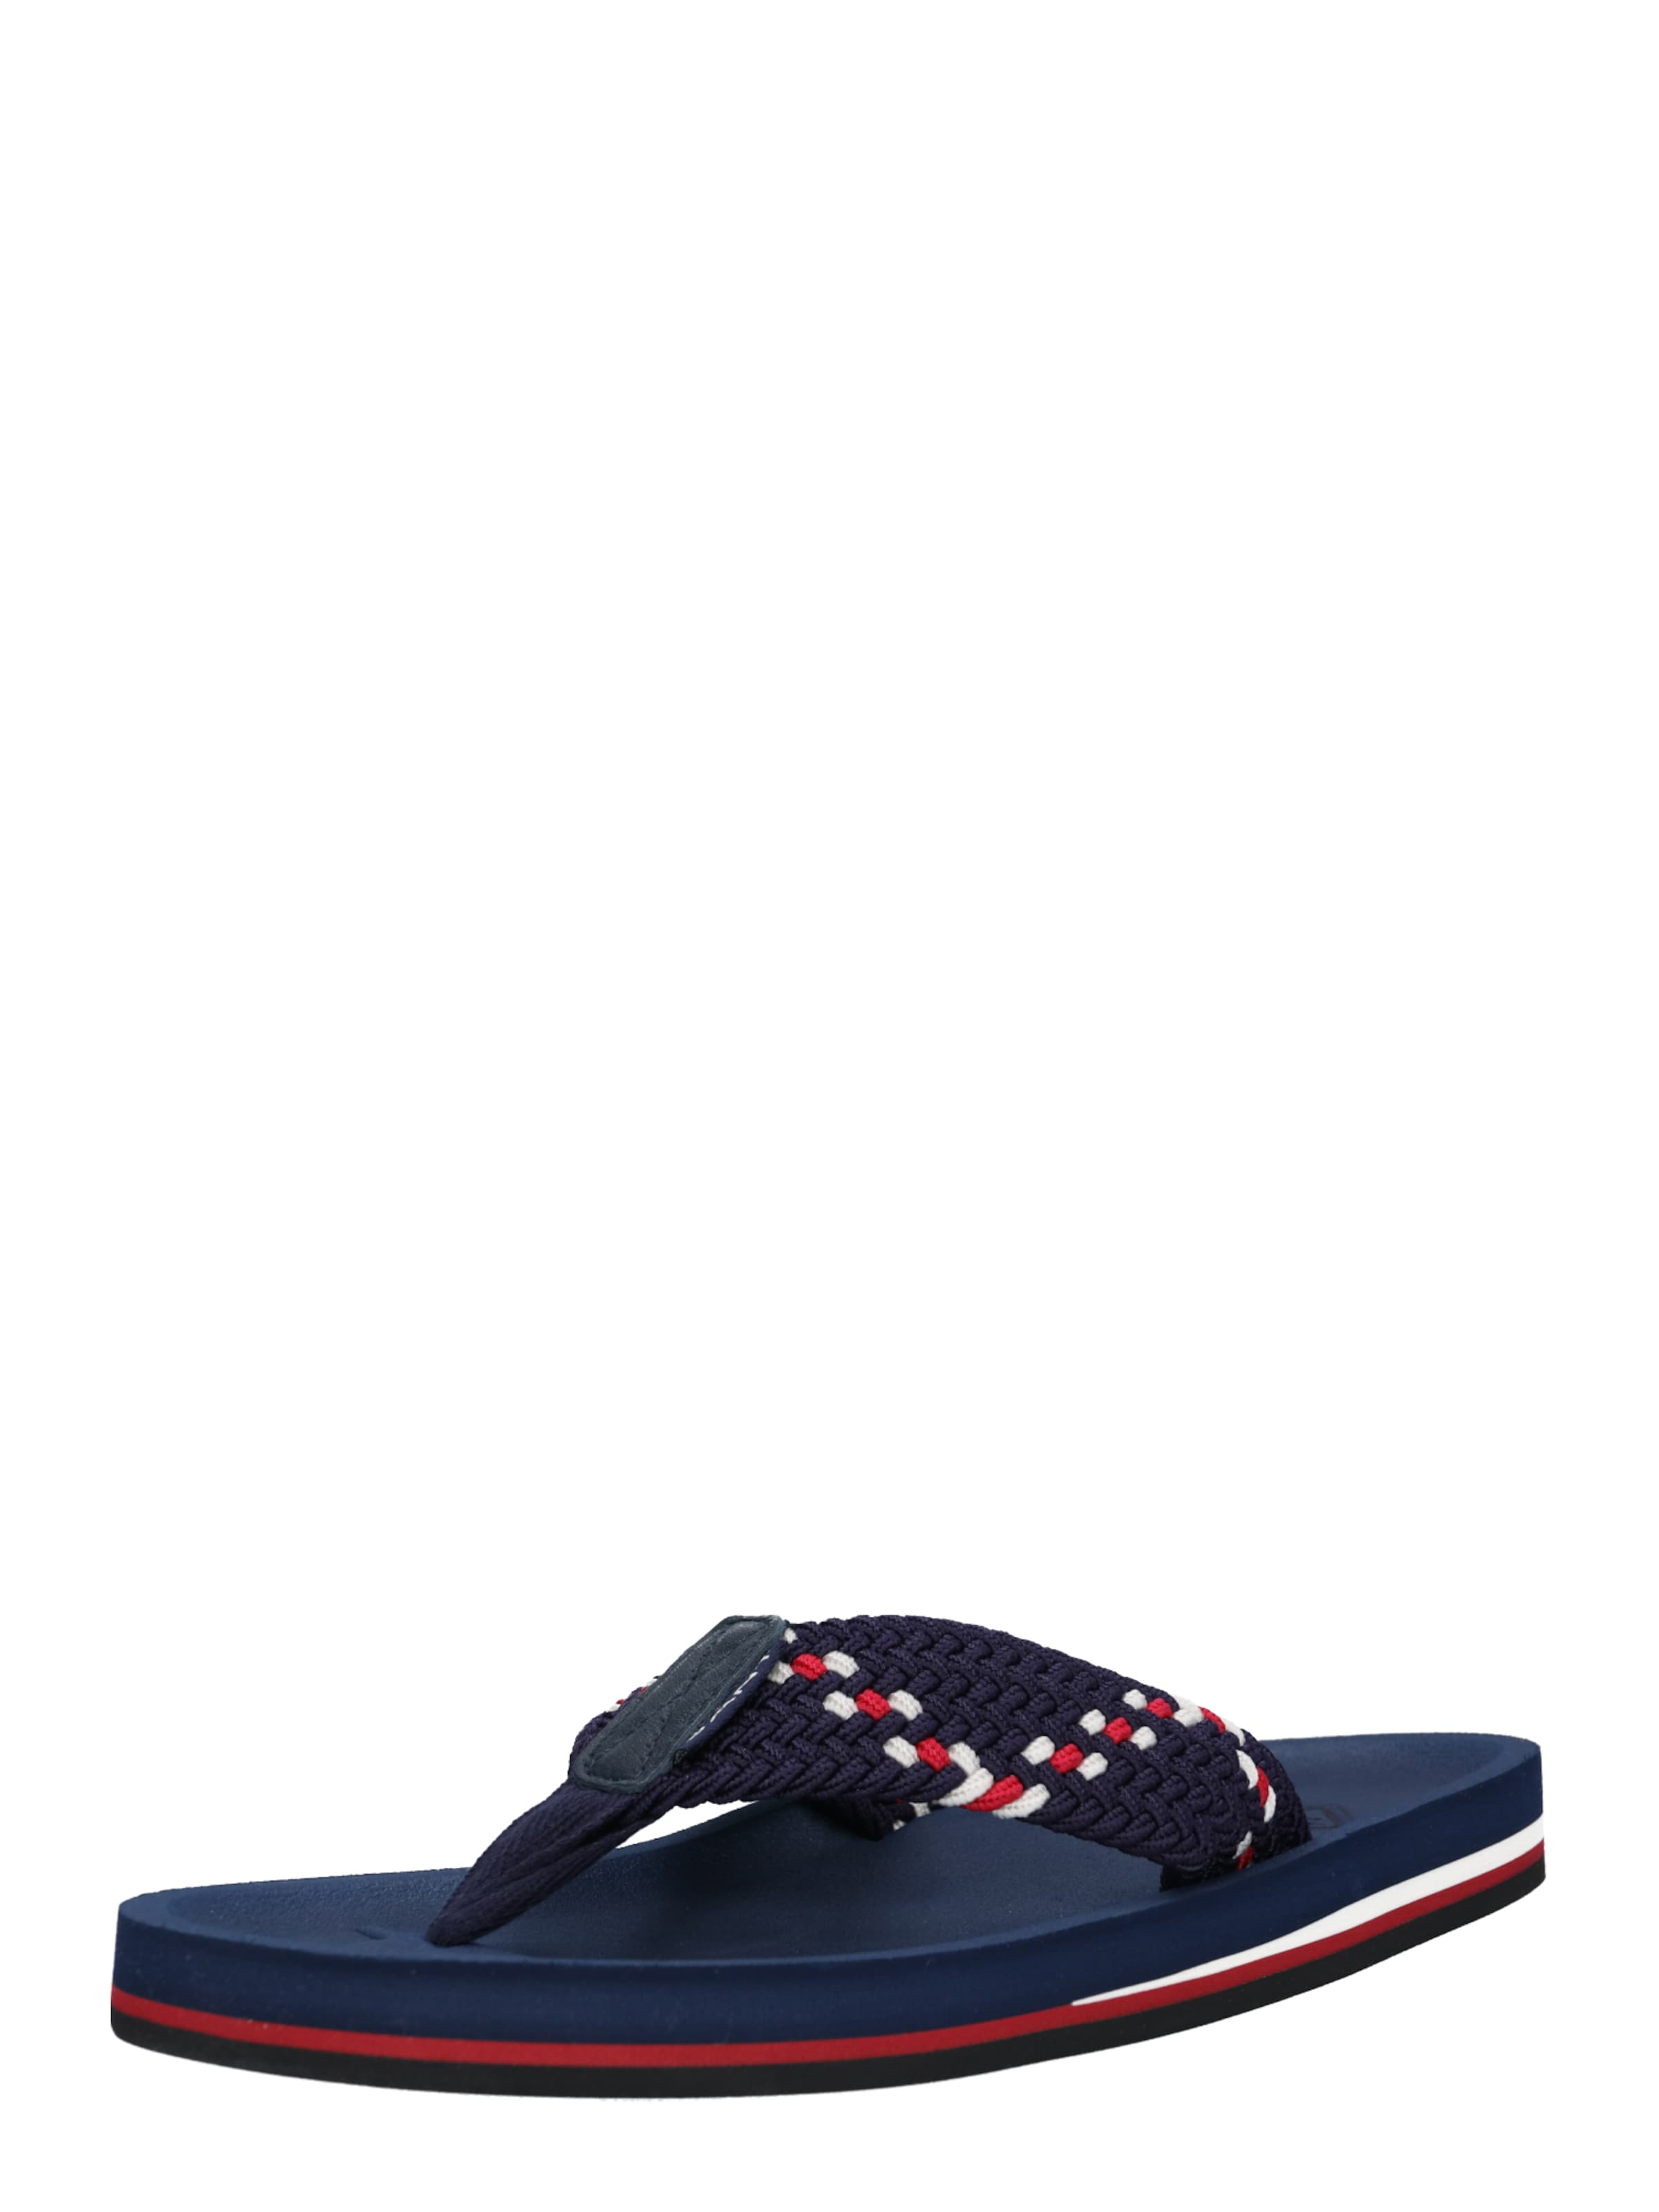 Gant Slipper In 'breeze' DunkelblauRot Weiß 7gbf6y